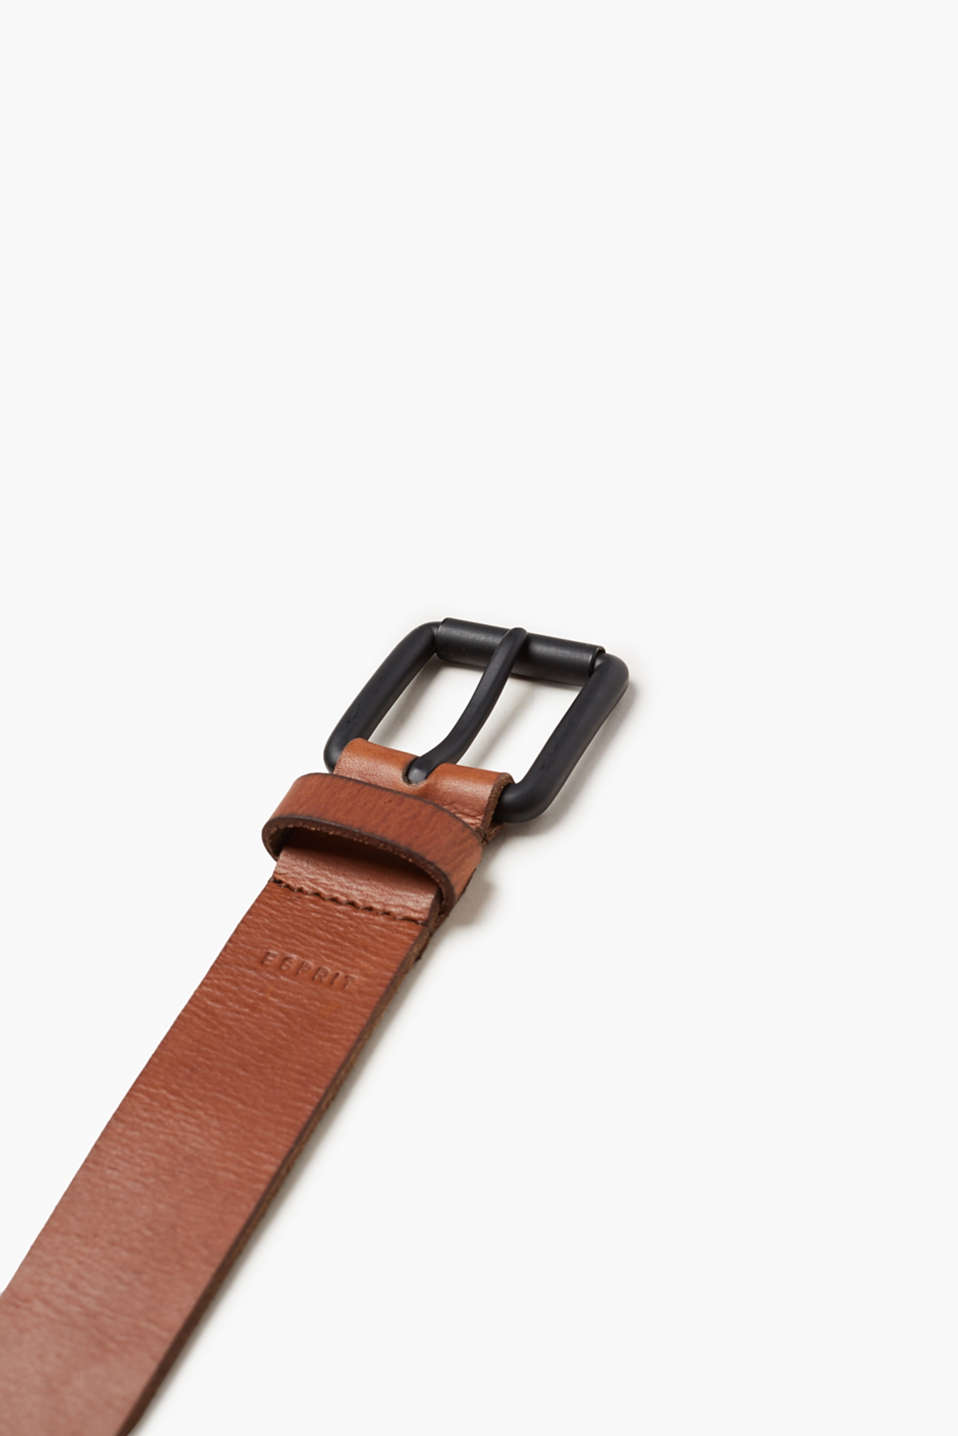 Belt with a vintage finish, leather